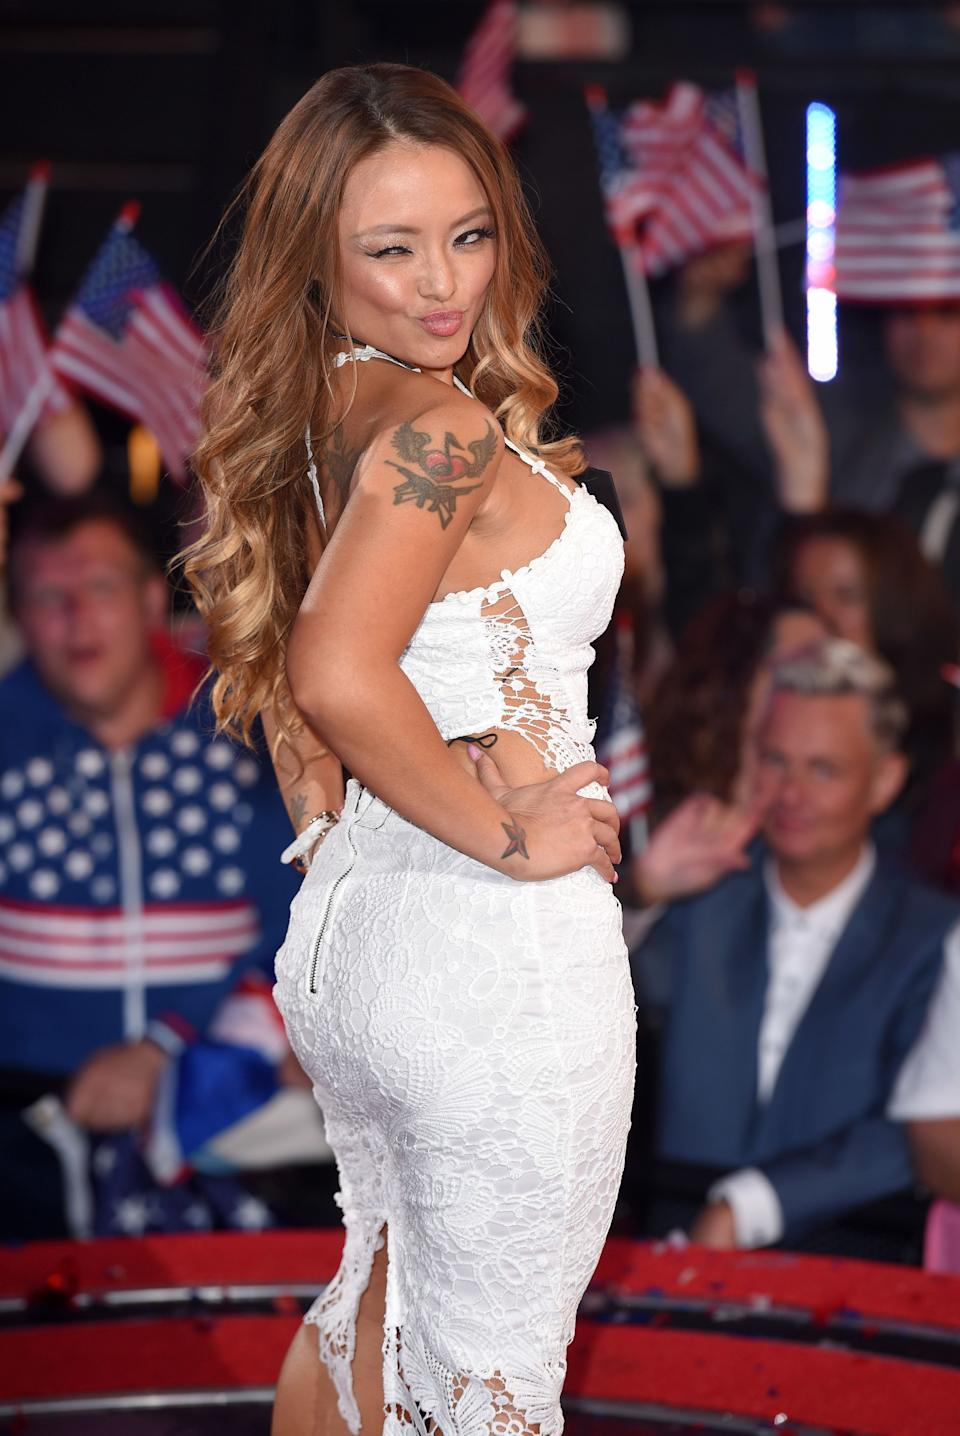 Tila Tequila's stay in the Borehamwood bungalow was the shortest in 'CBB' history, getting axed by producers after spending just one day in the house.<br /><br />Bosses decided to remove her when they claimed to have discovered a number of controversial anti-Semitic and racist posts she'd made on social media (though we're not sure how these could have slipped through the net, they were there for all to see prior to her entrance, even on her Wikipedia page).<br /><br />Tila's exit was never shown, meaning 'CBB' fans are still in the dark about exactly what went on.